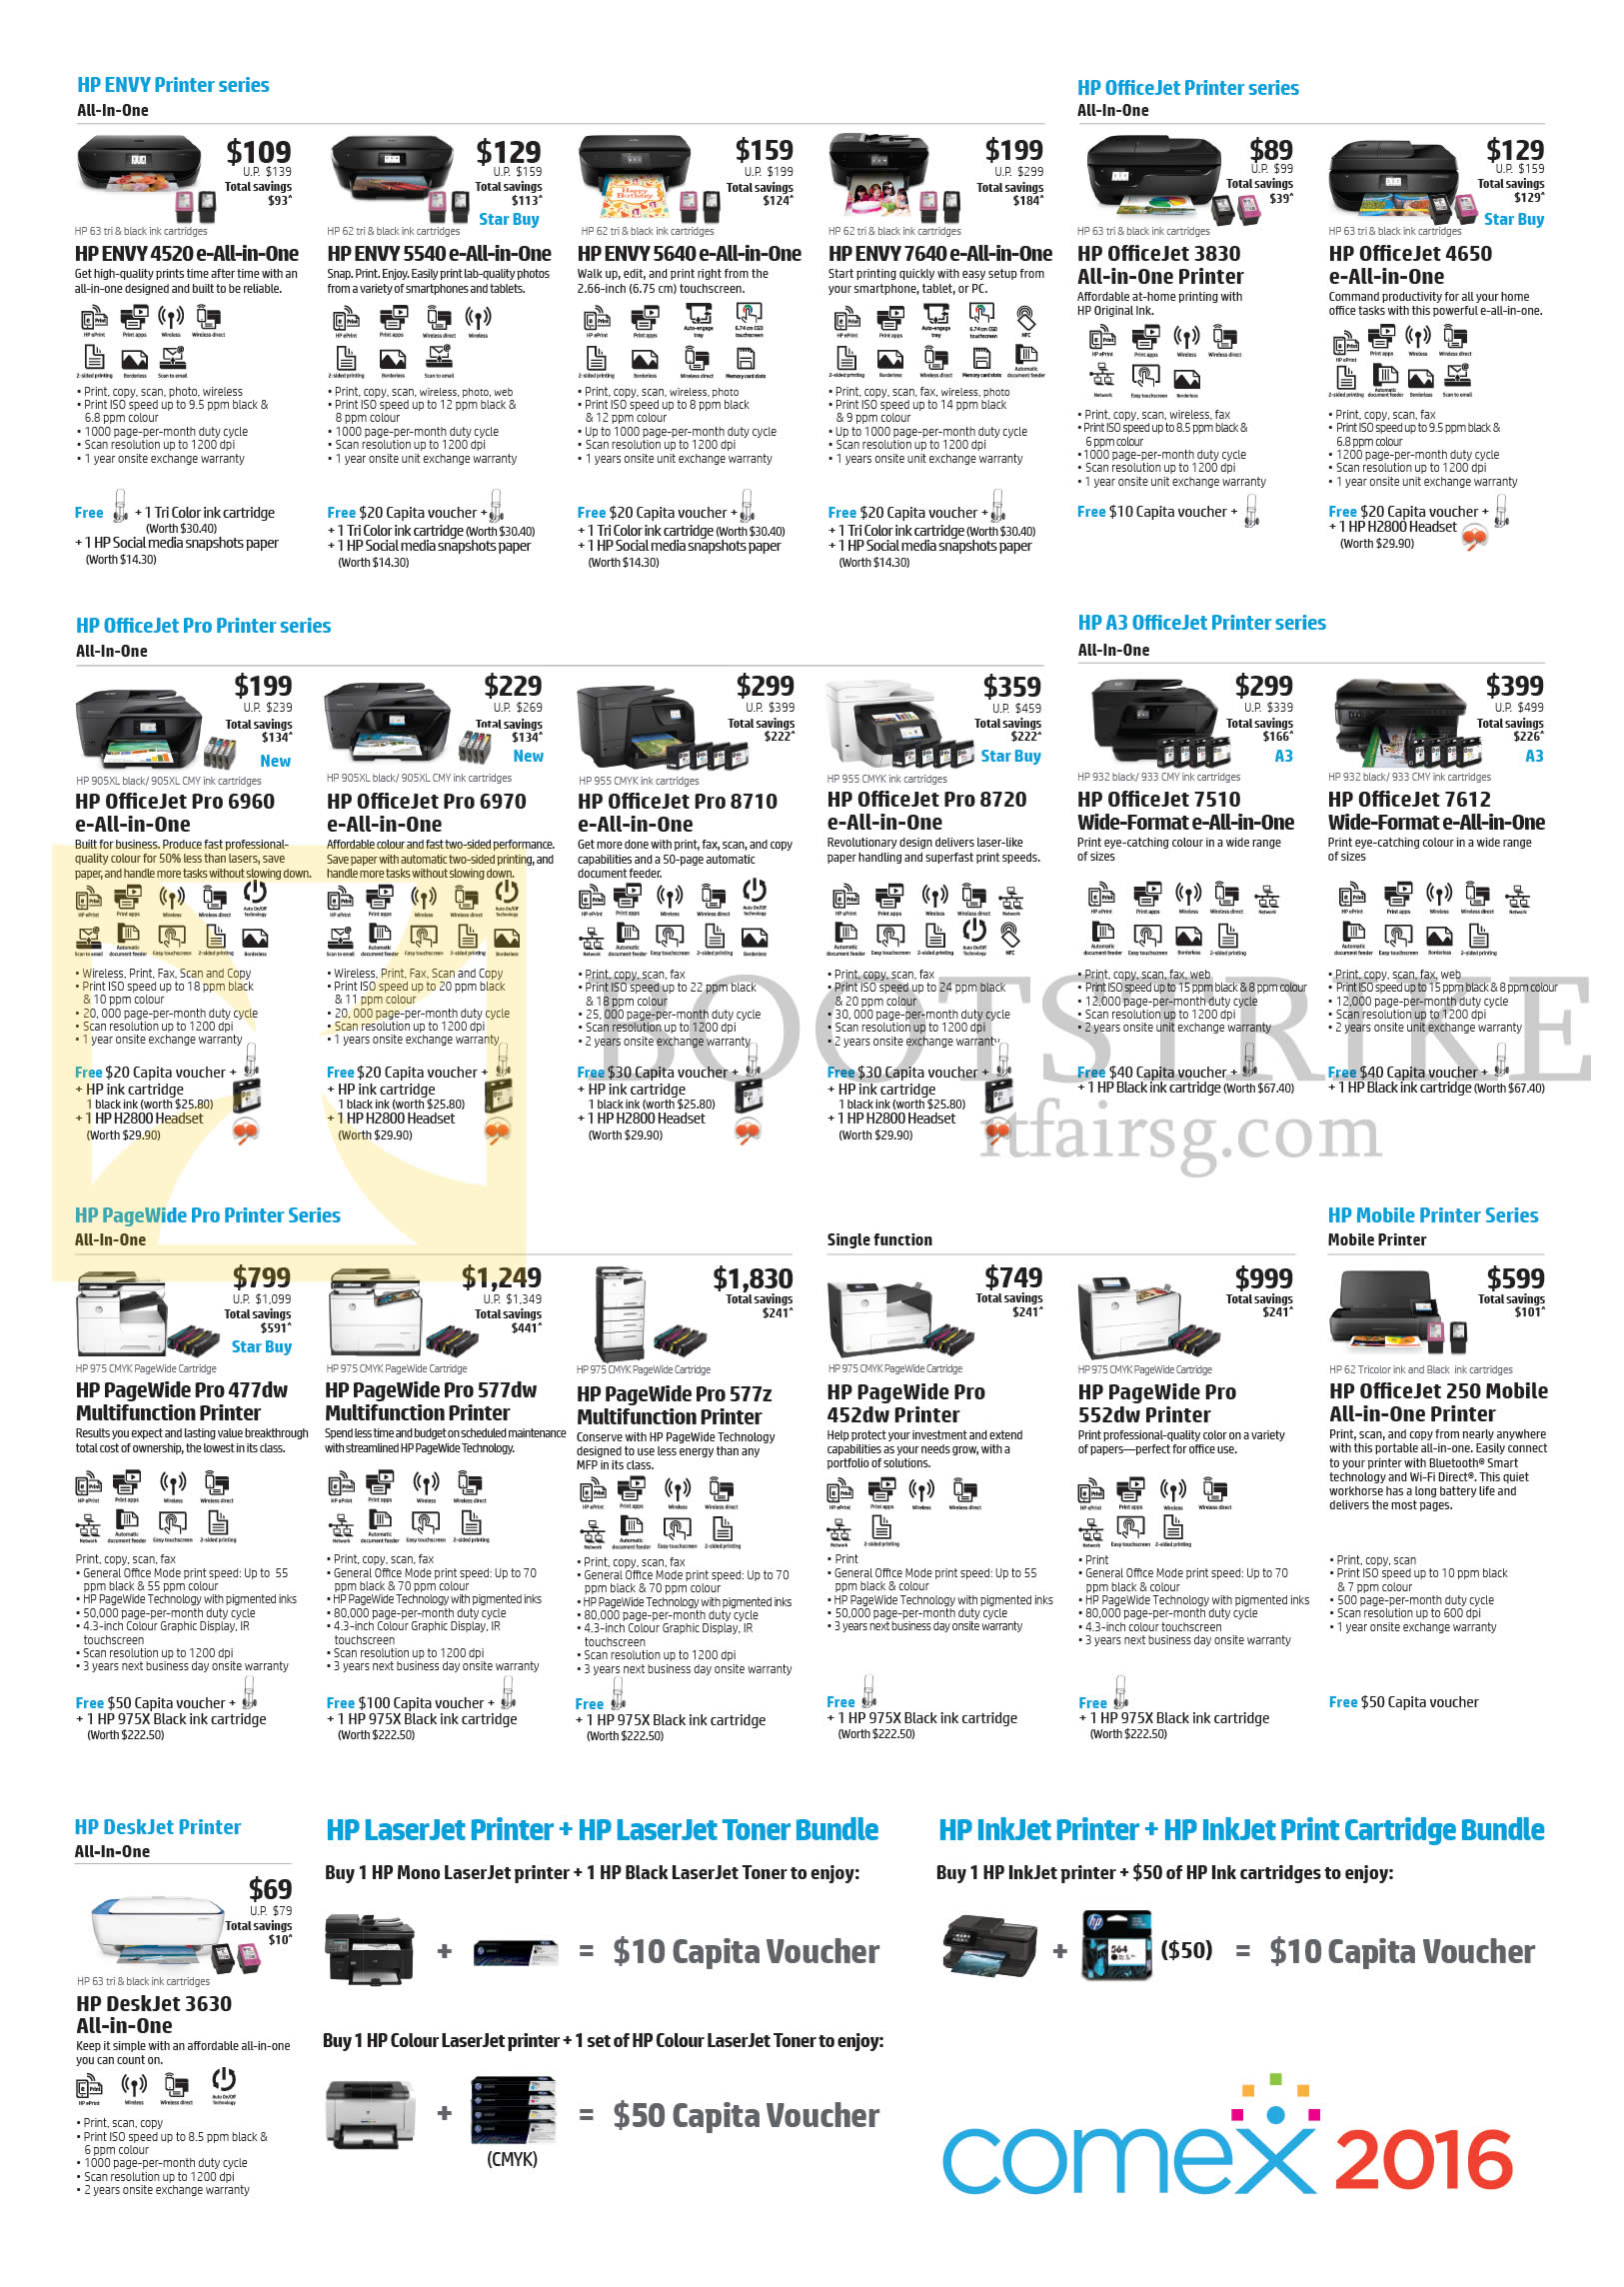 COMEX 2016 price list image brochure of HP Printers, Envy, OfficeJet, OfficeJet Pro, A3 OfficeJet, Pagewide Pro, Mobile Printer, Deskjet Printer Series